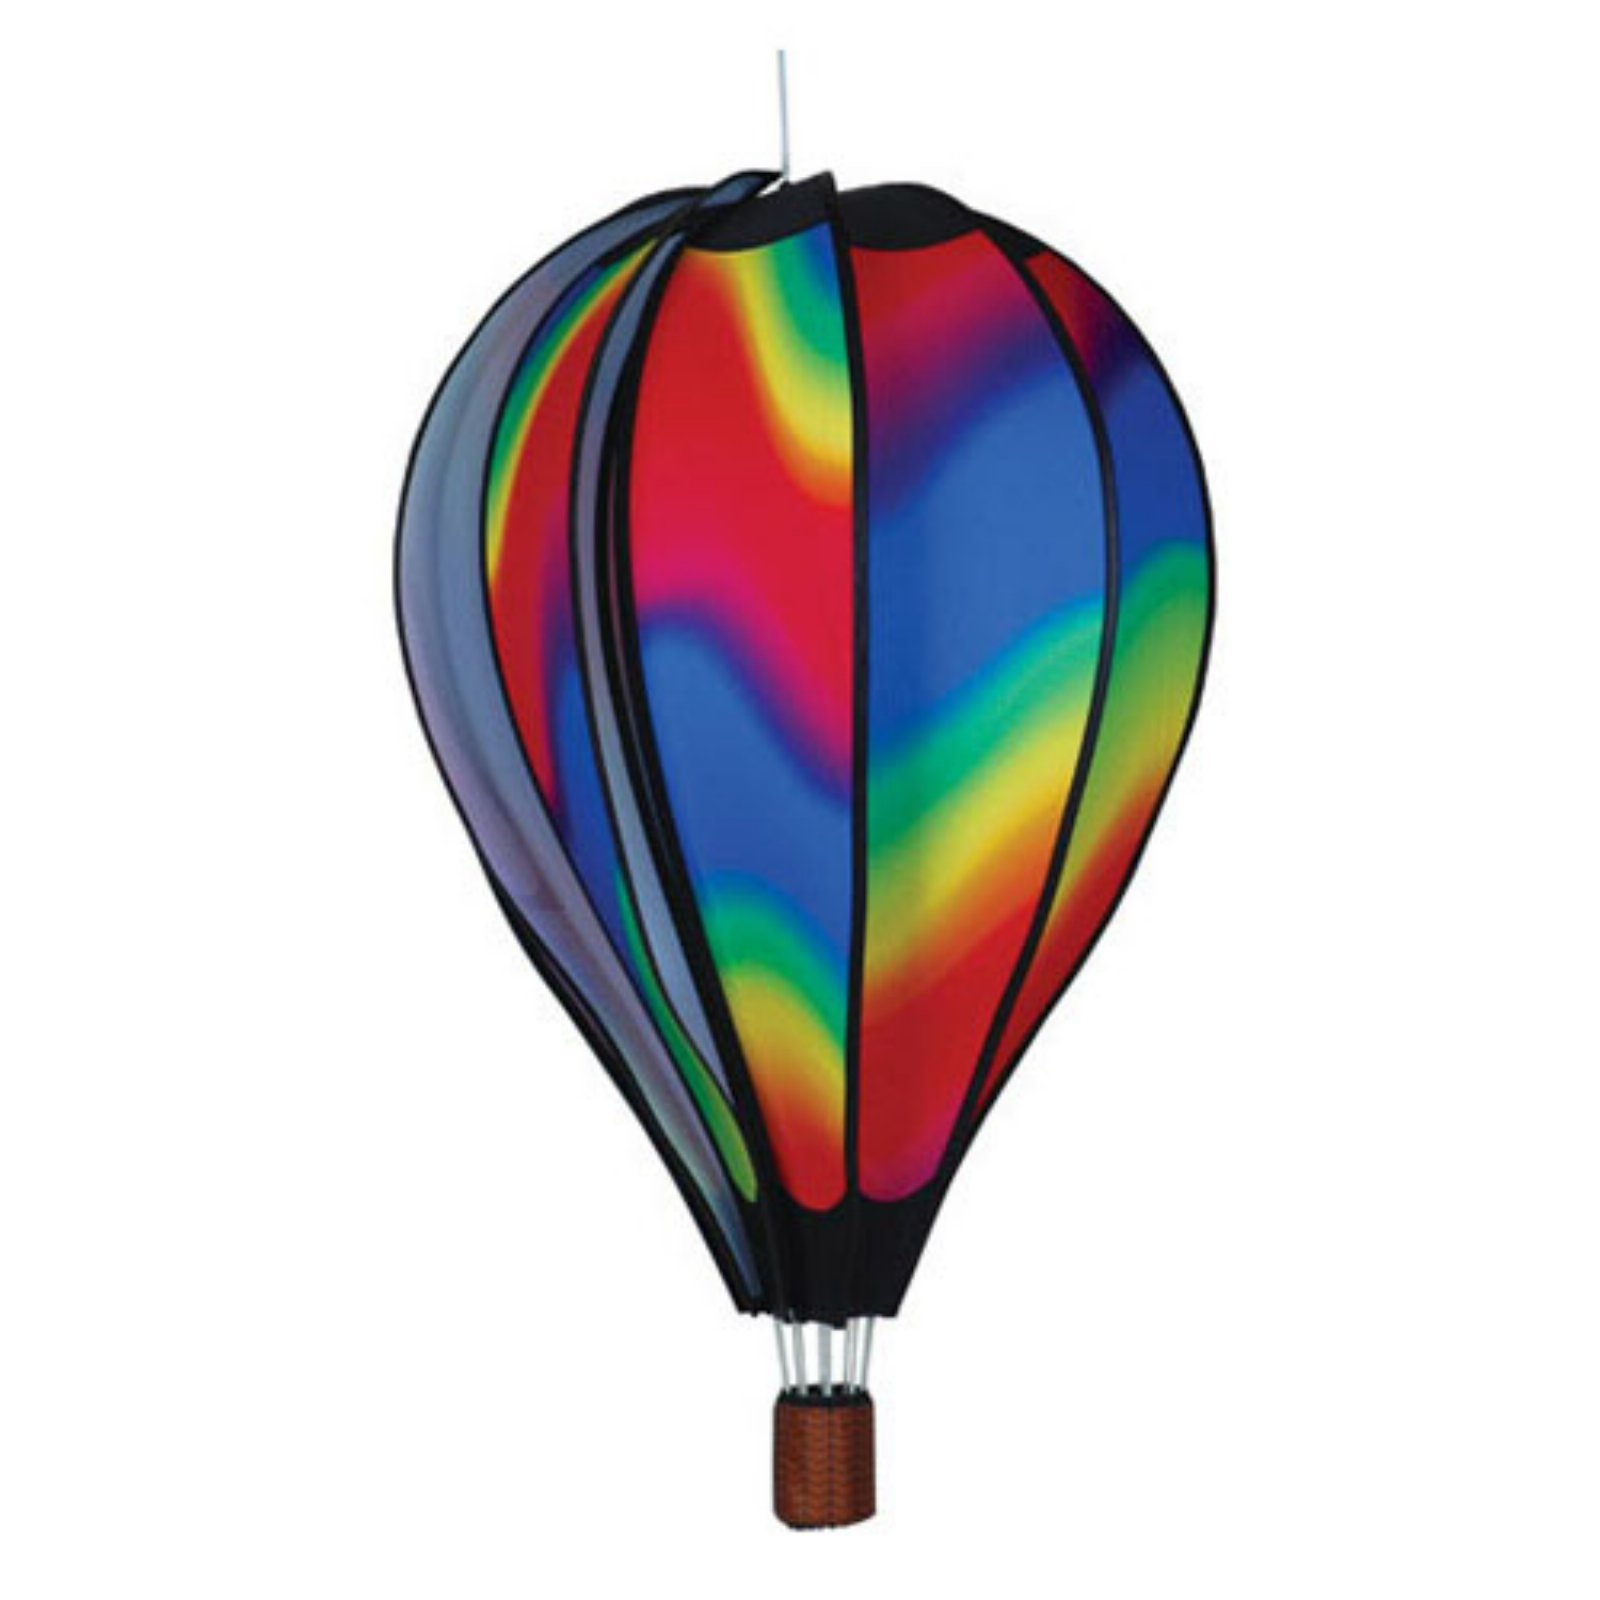 Premier Designs Hot Air Balloon Wavy Gradient Wind Spinner